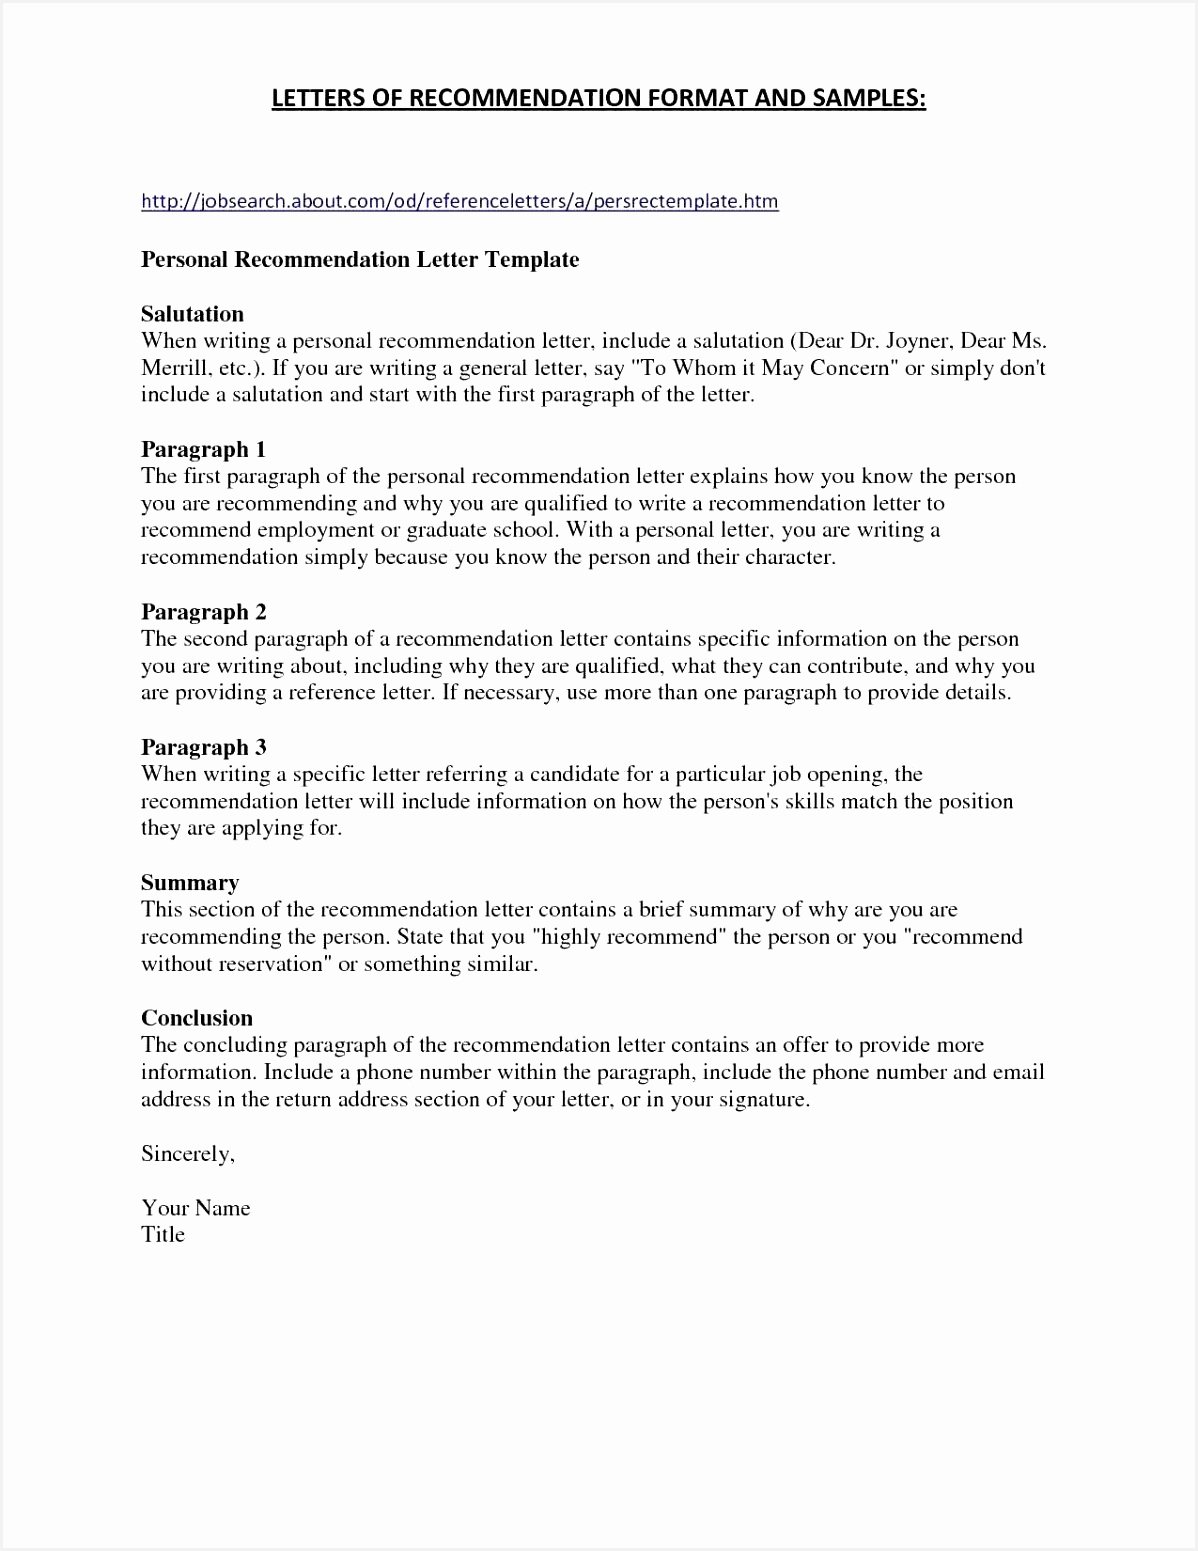 What to Put In A Resume Cover Letter Ebkab Unique Cover Letter for Resume Sample for Fresh Graduate New Job Apply Of What to Put In A Resume Cover Letter Vghgi Unique √ 34 Inspirational Good Way to Start A Cover Letter